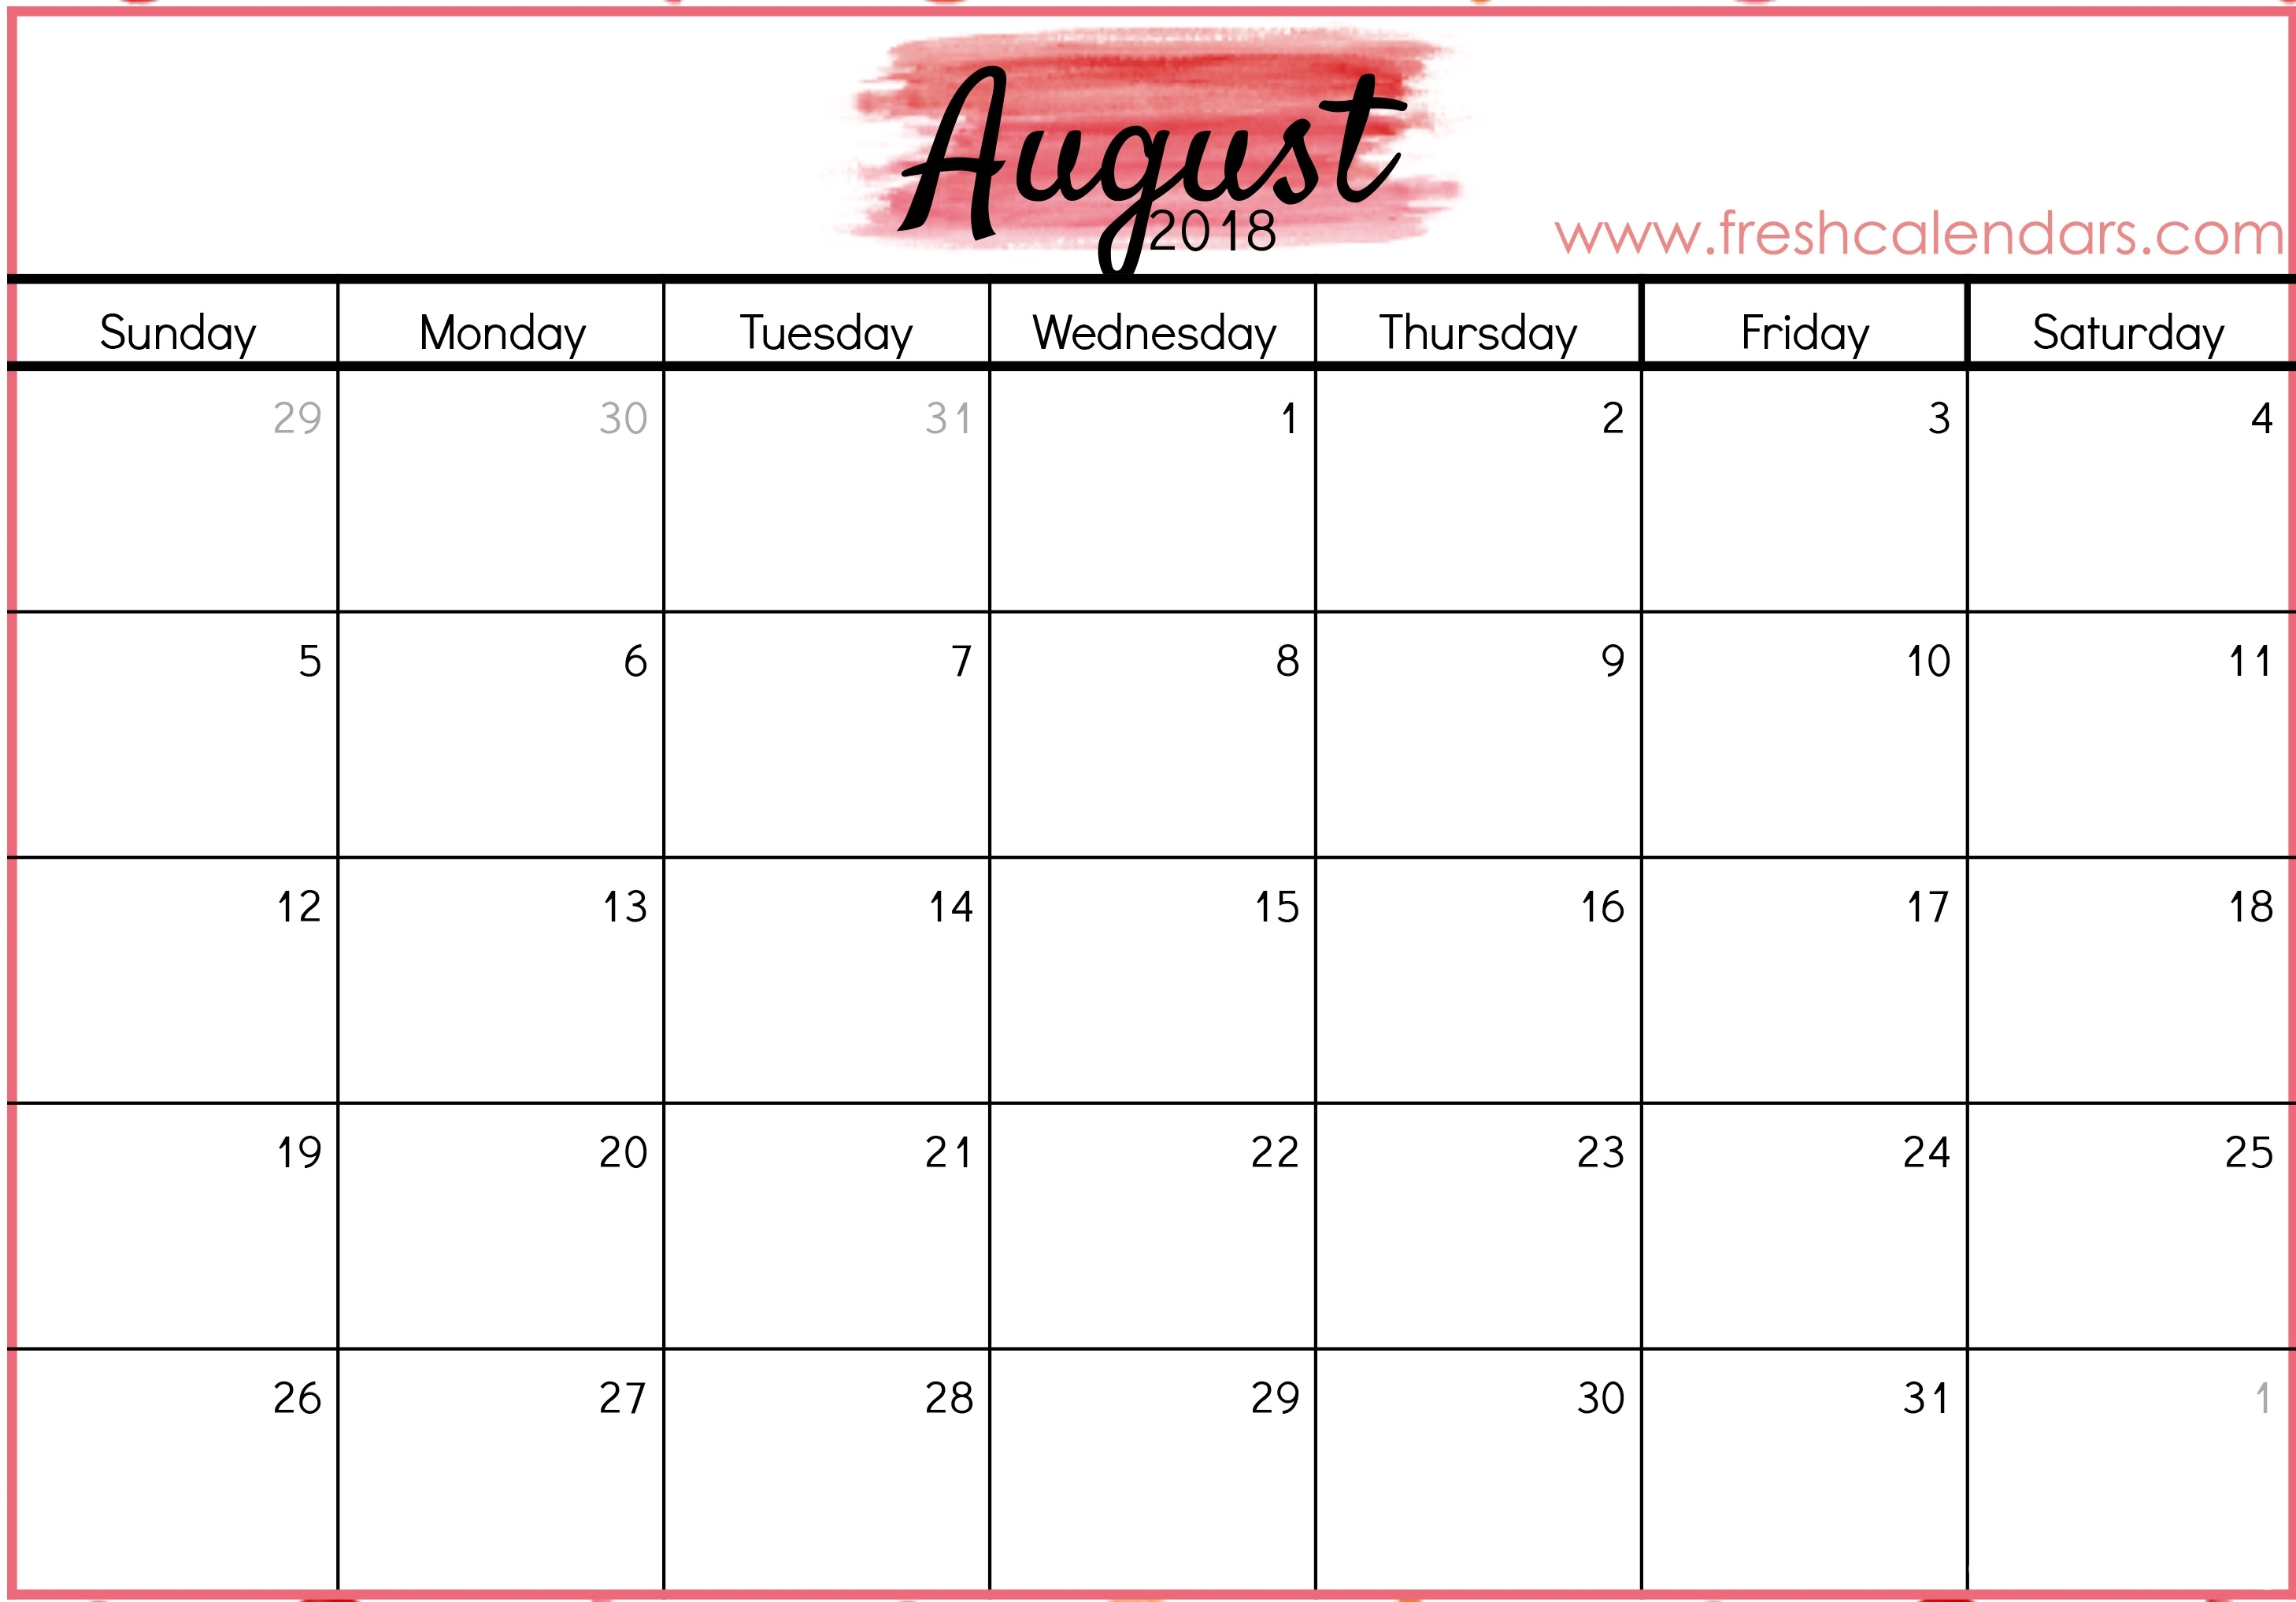 August 2018 Calendar Printable - Fresh Calendars for Picture Of August On Calendar